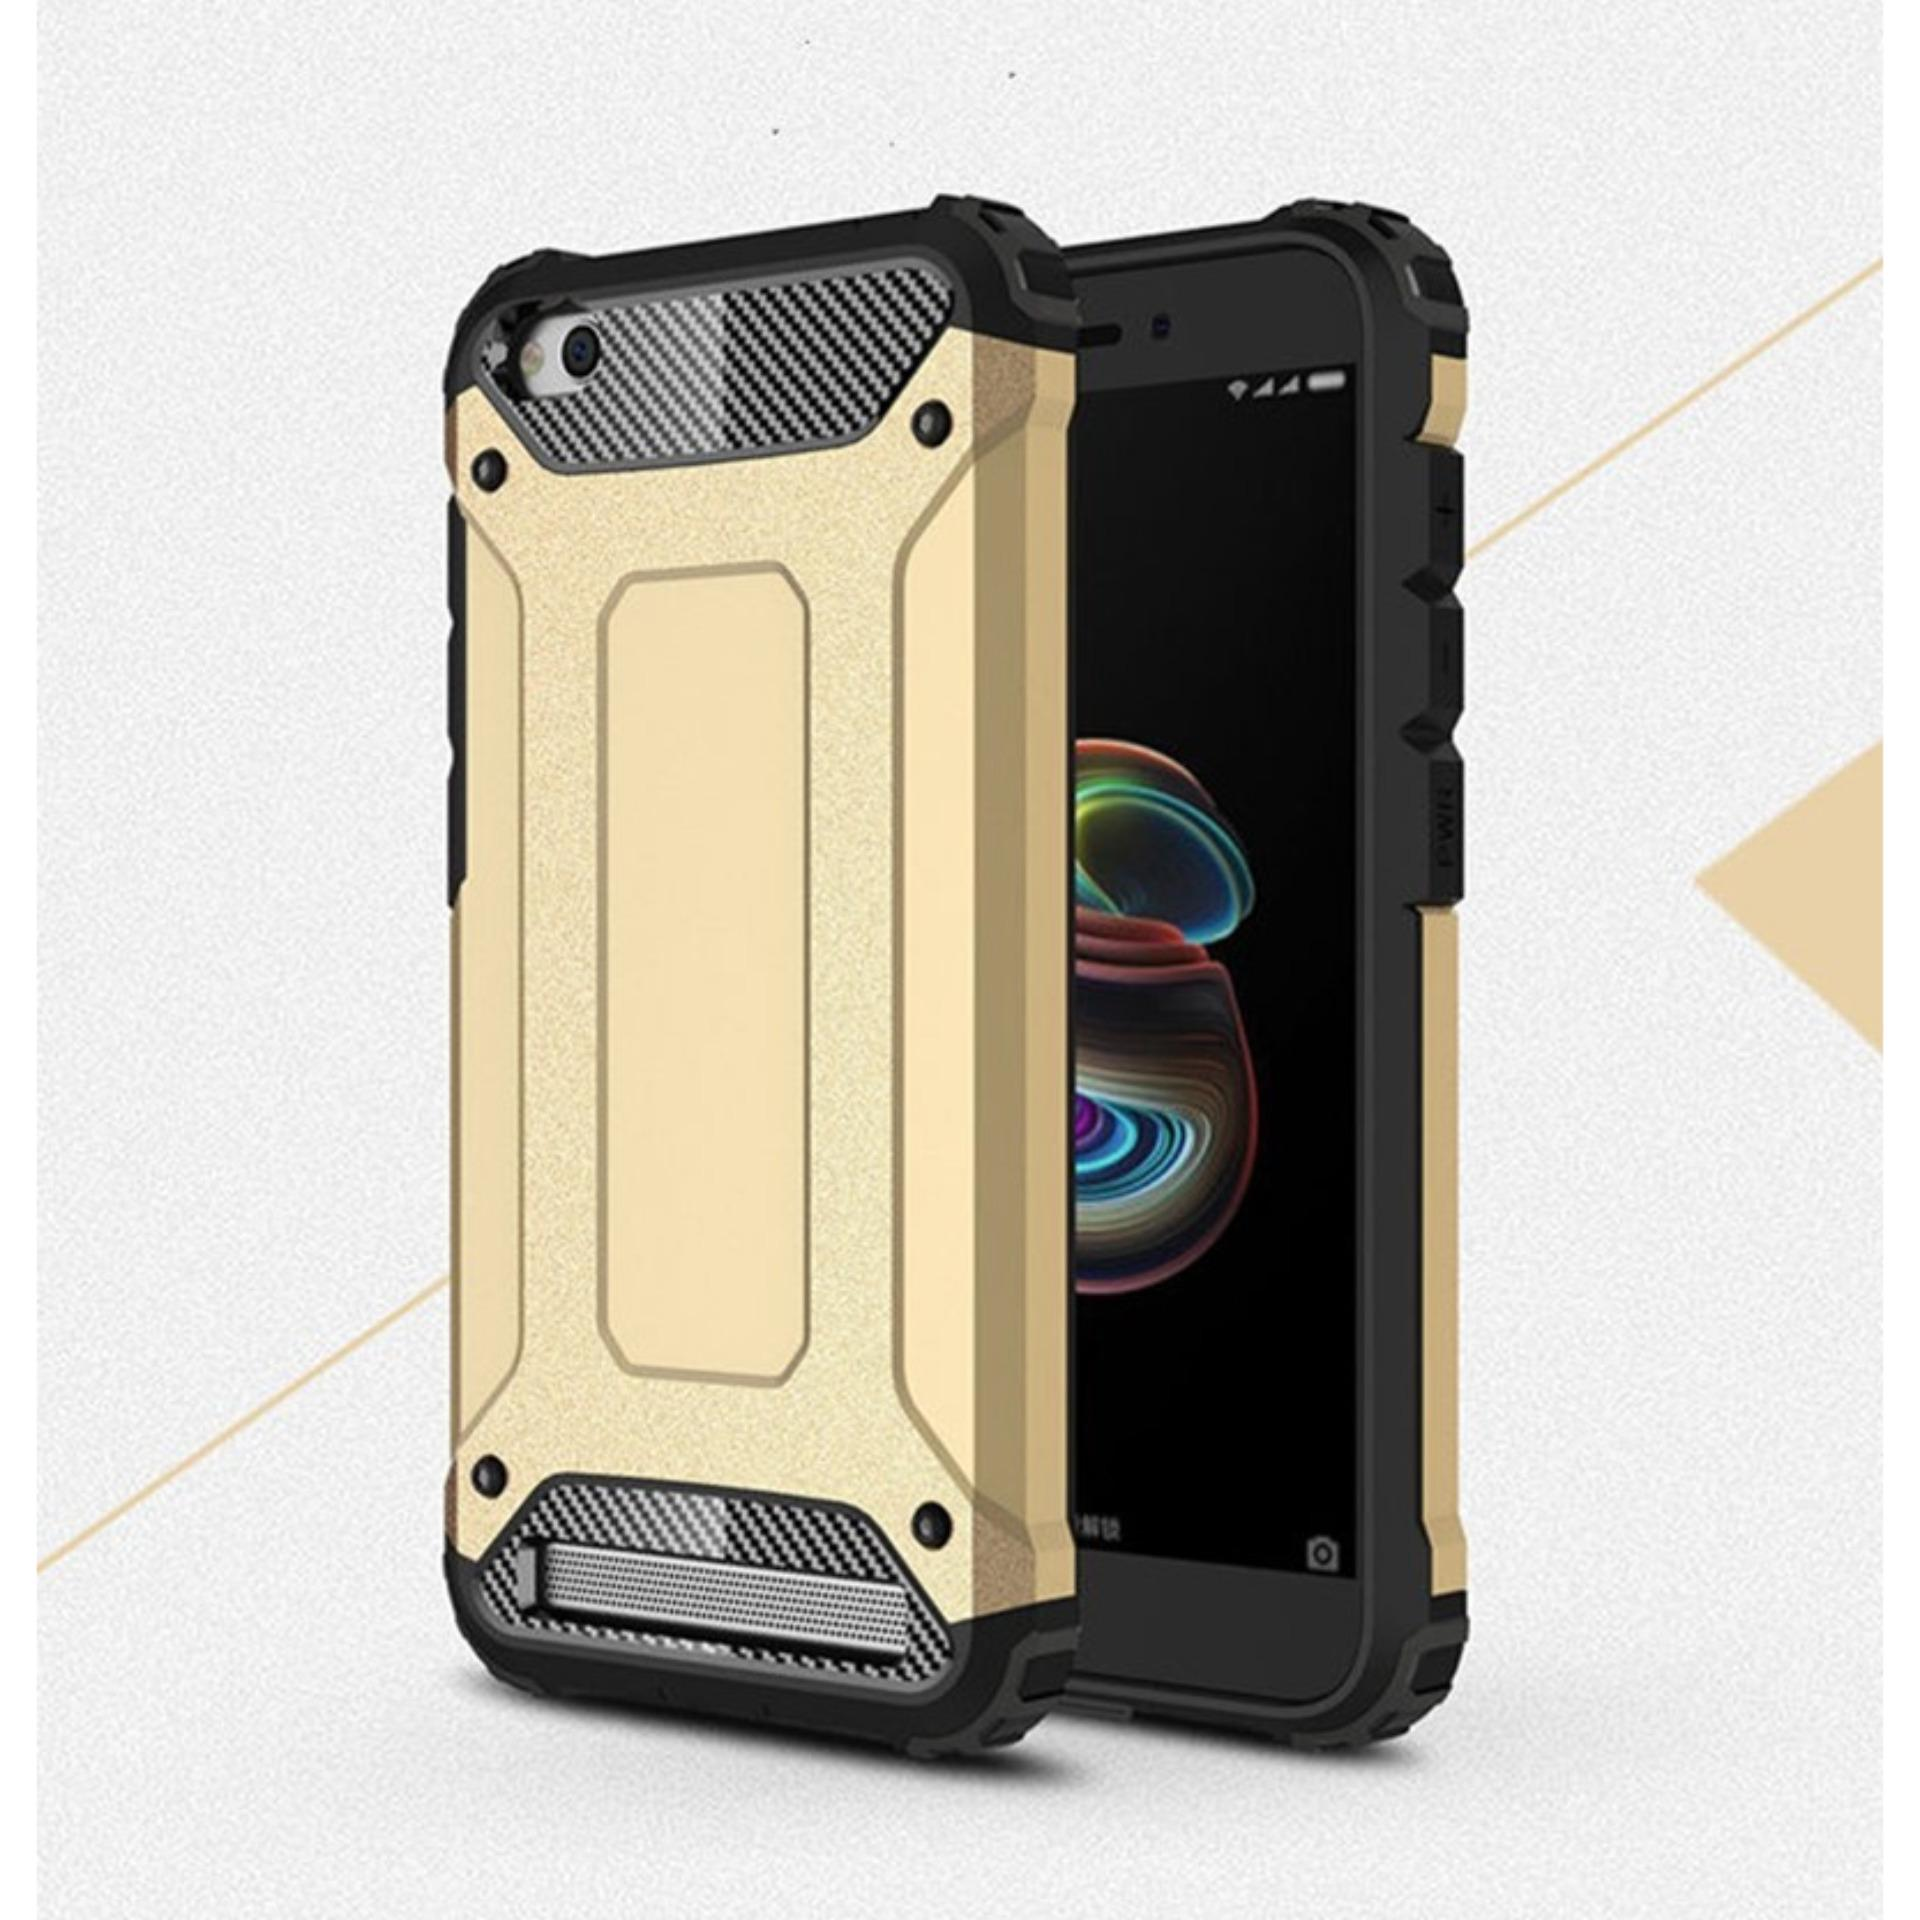 Case Hard Cover Robot Shockproof Armor For Xiaomi Redmi 5A – Gold